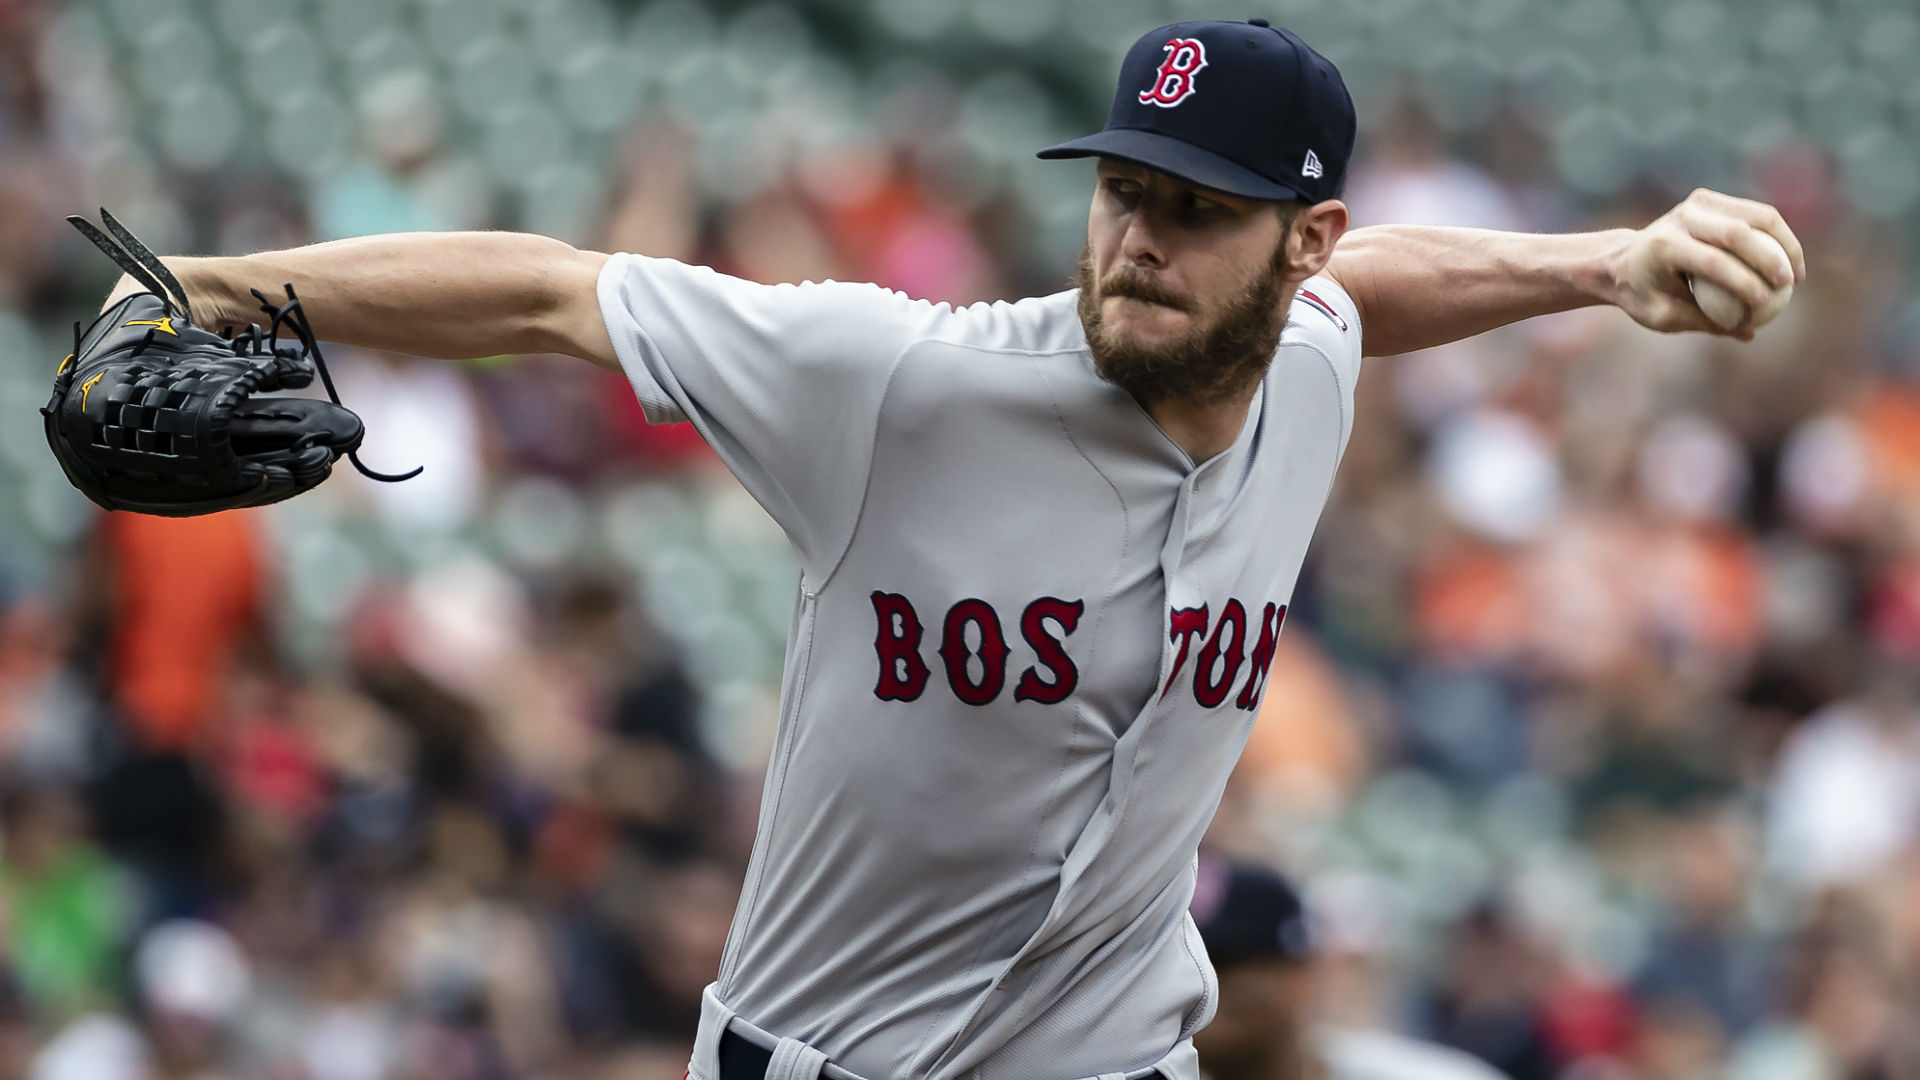 MLB wrap: Chris Sale returns from DL, strikes out 12 in Red Sox win over Orioles